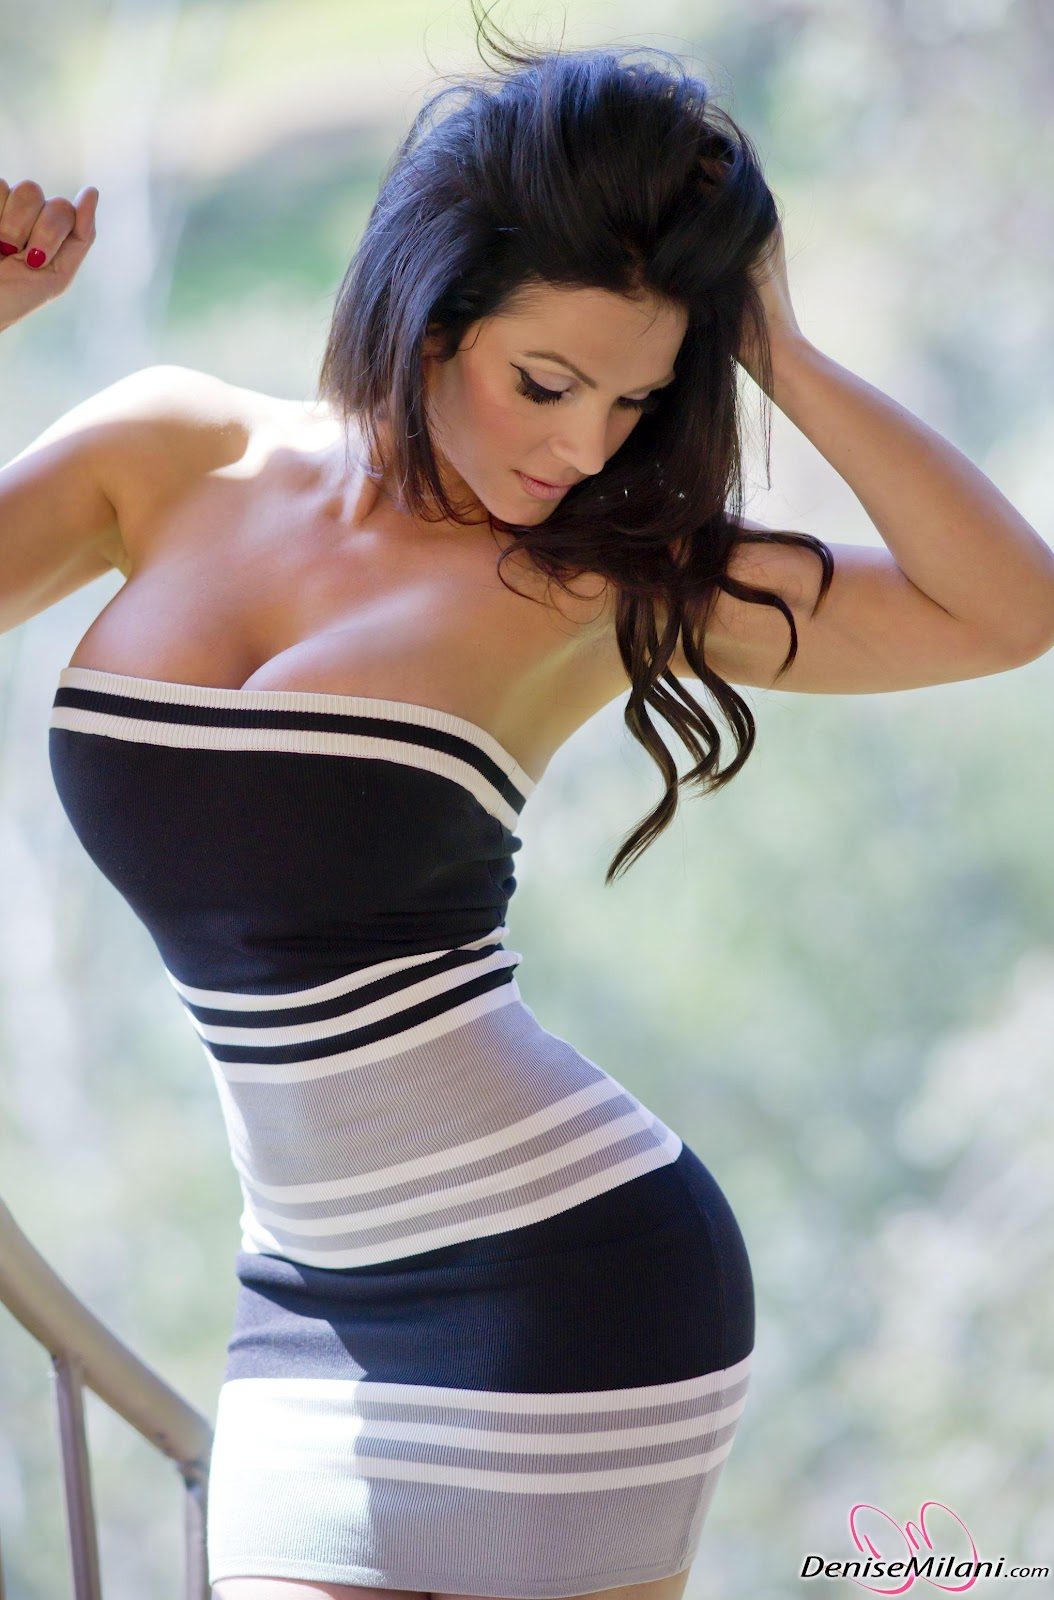 A Beautiful African: Denise Milani Beautiful Figure Picture